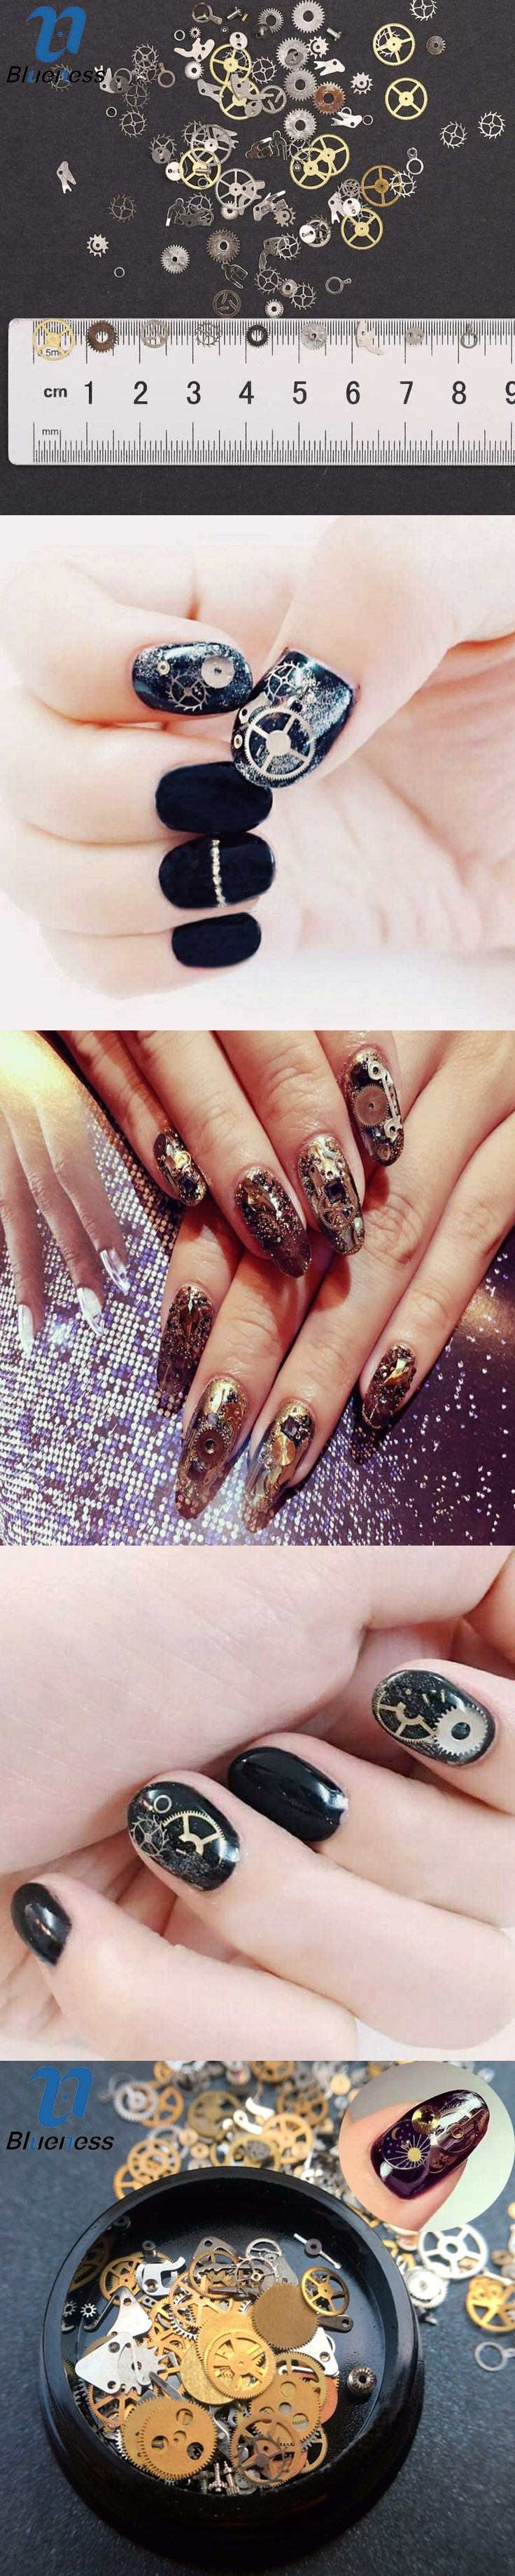 16 best Nails did images on Pinterest   Nail scissors, Nail polish ...